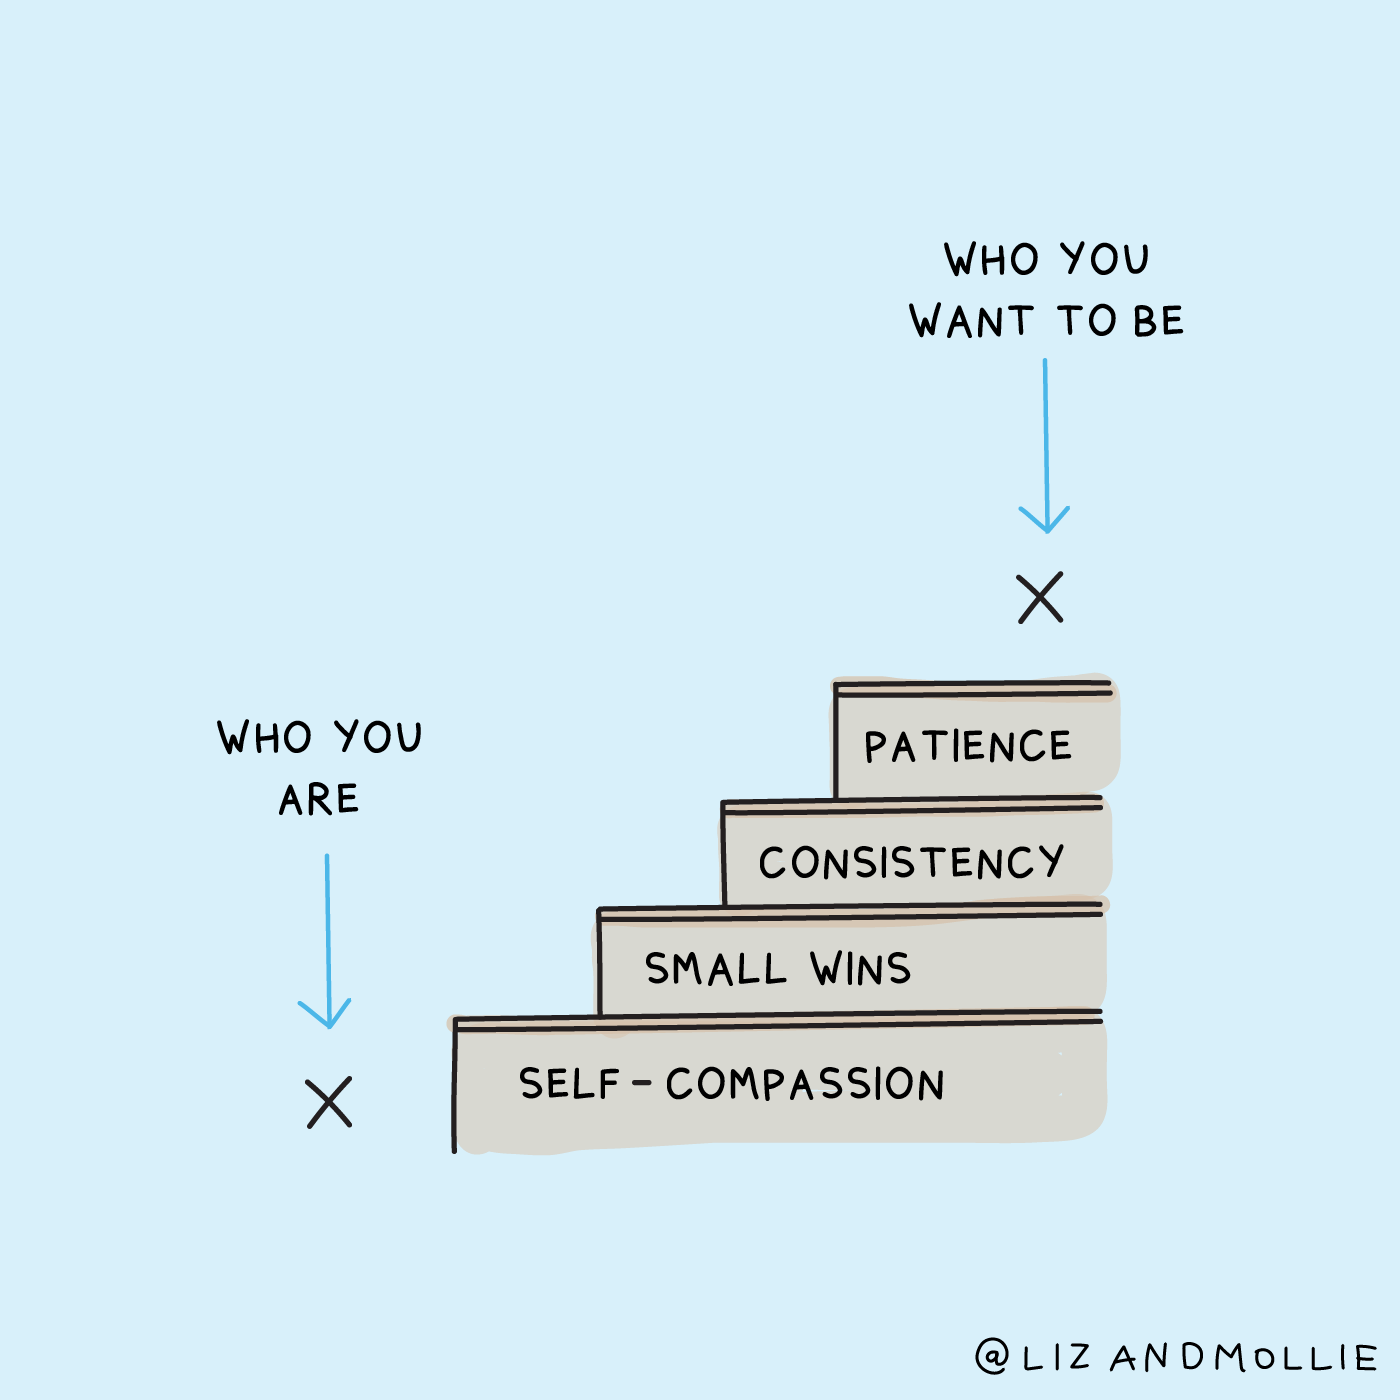 An illustration showing that the steps to get to from who you are to who you want to be are self-compassion, small wins, consistency, and patience.